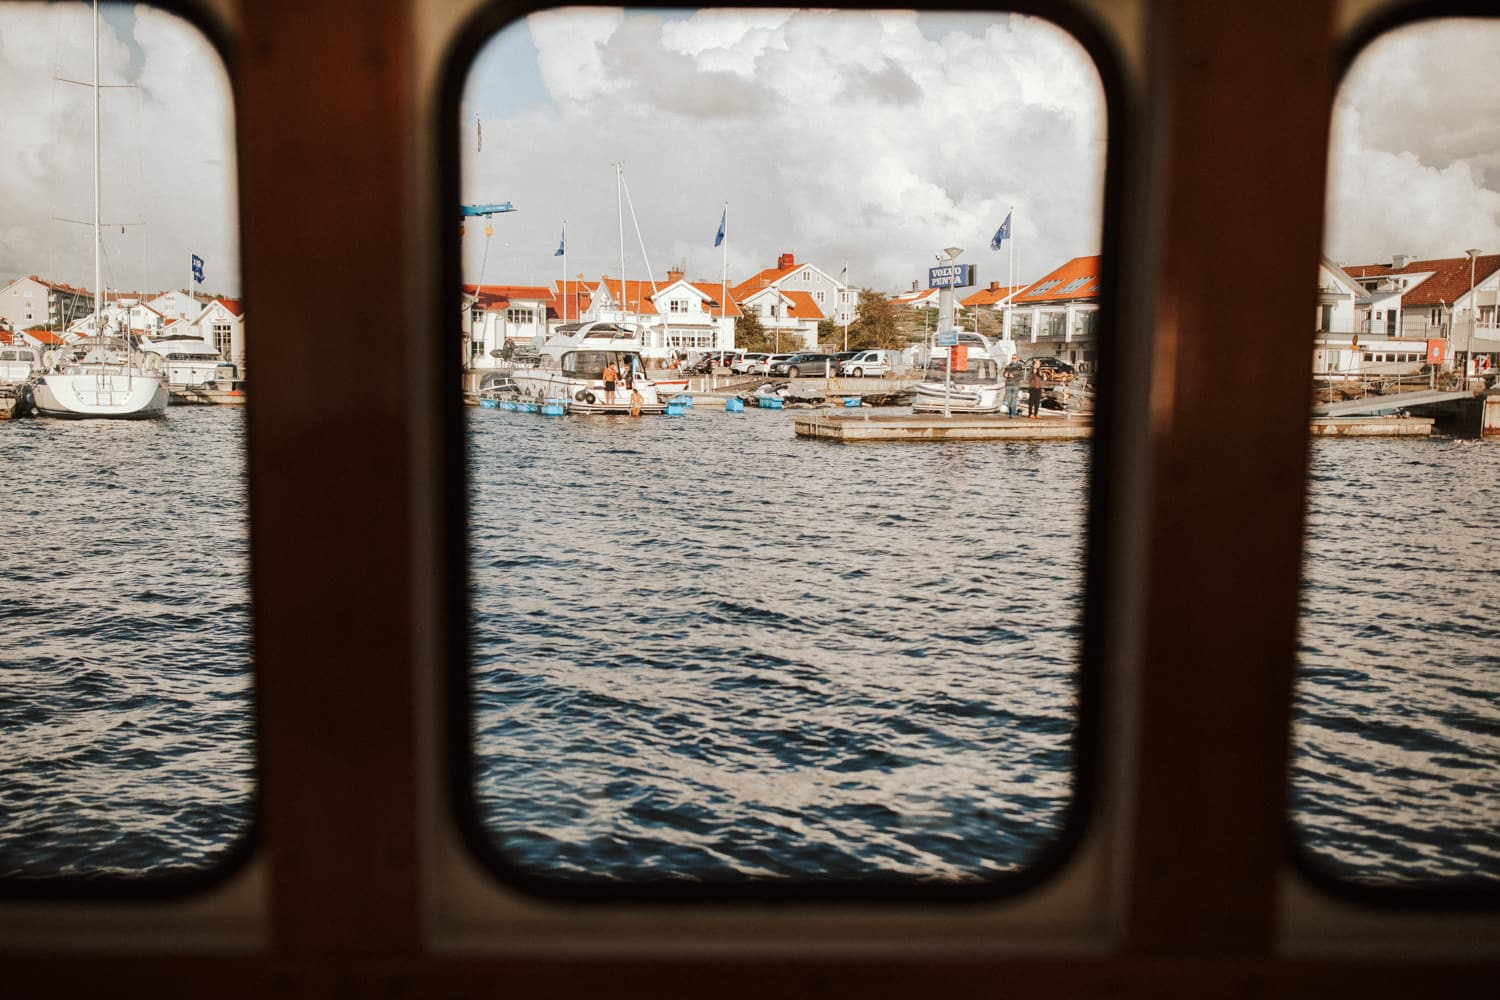 The view out of a boat window shows the ocean, other boats and buildings.